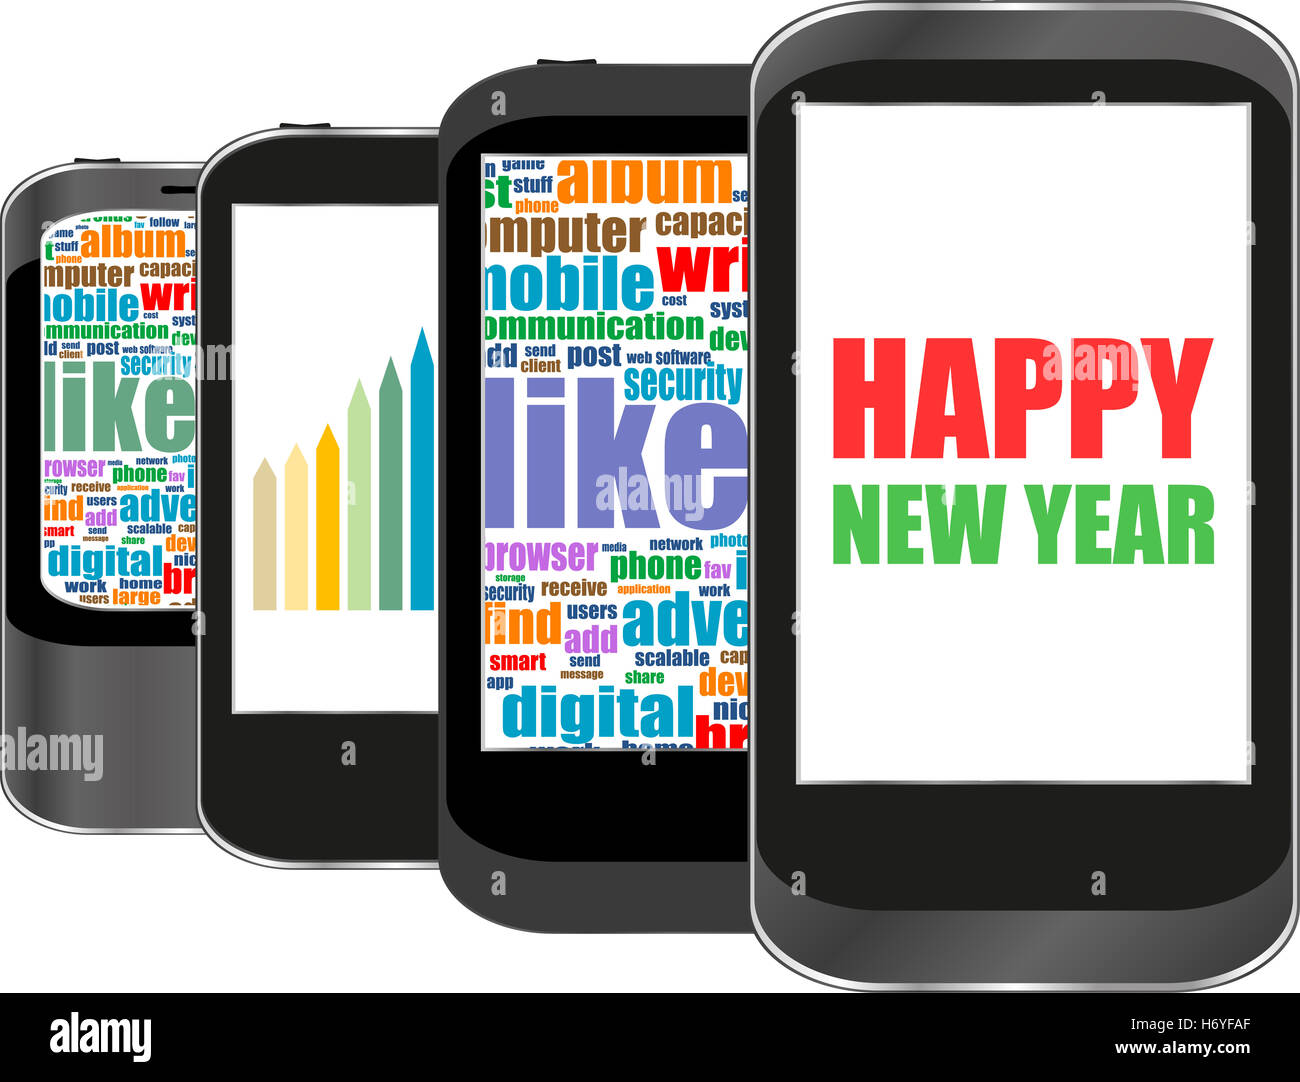 Smart Phone With Happy New Year Greetings On The Screen Holiday